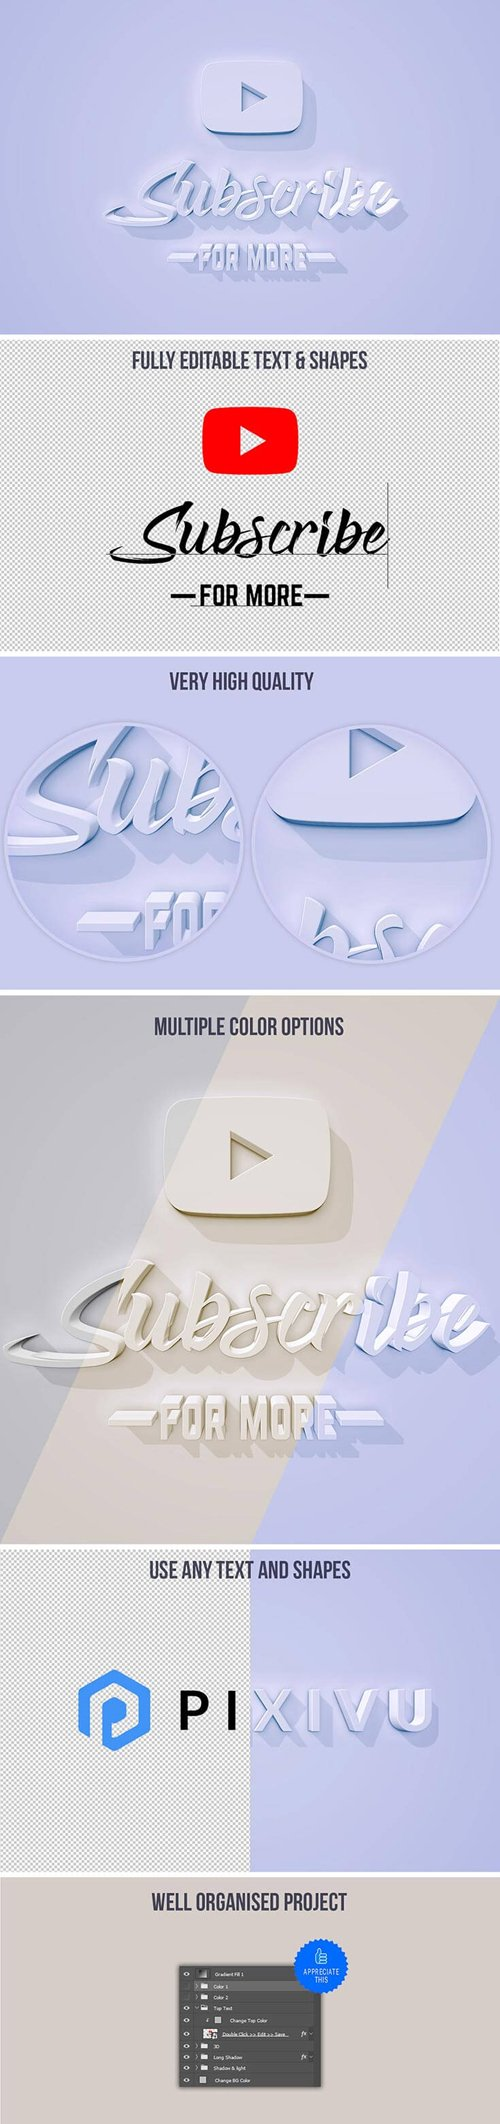 3D Text Effect in PSD